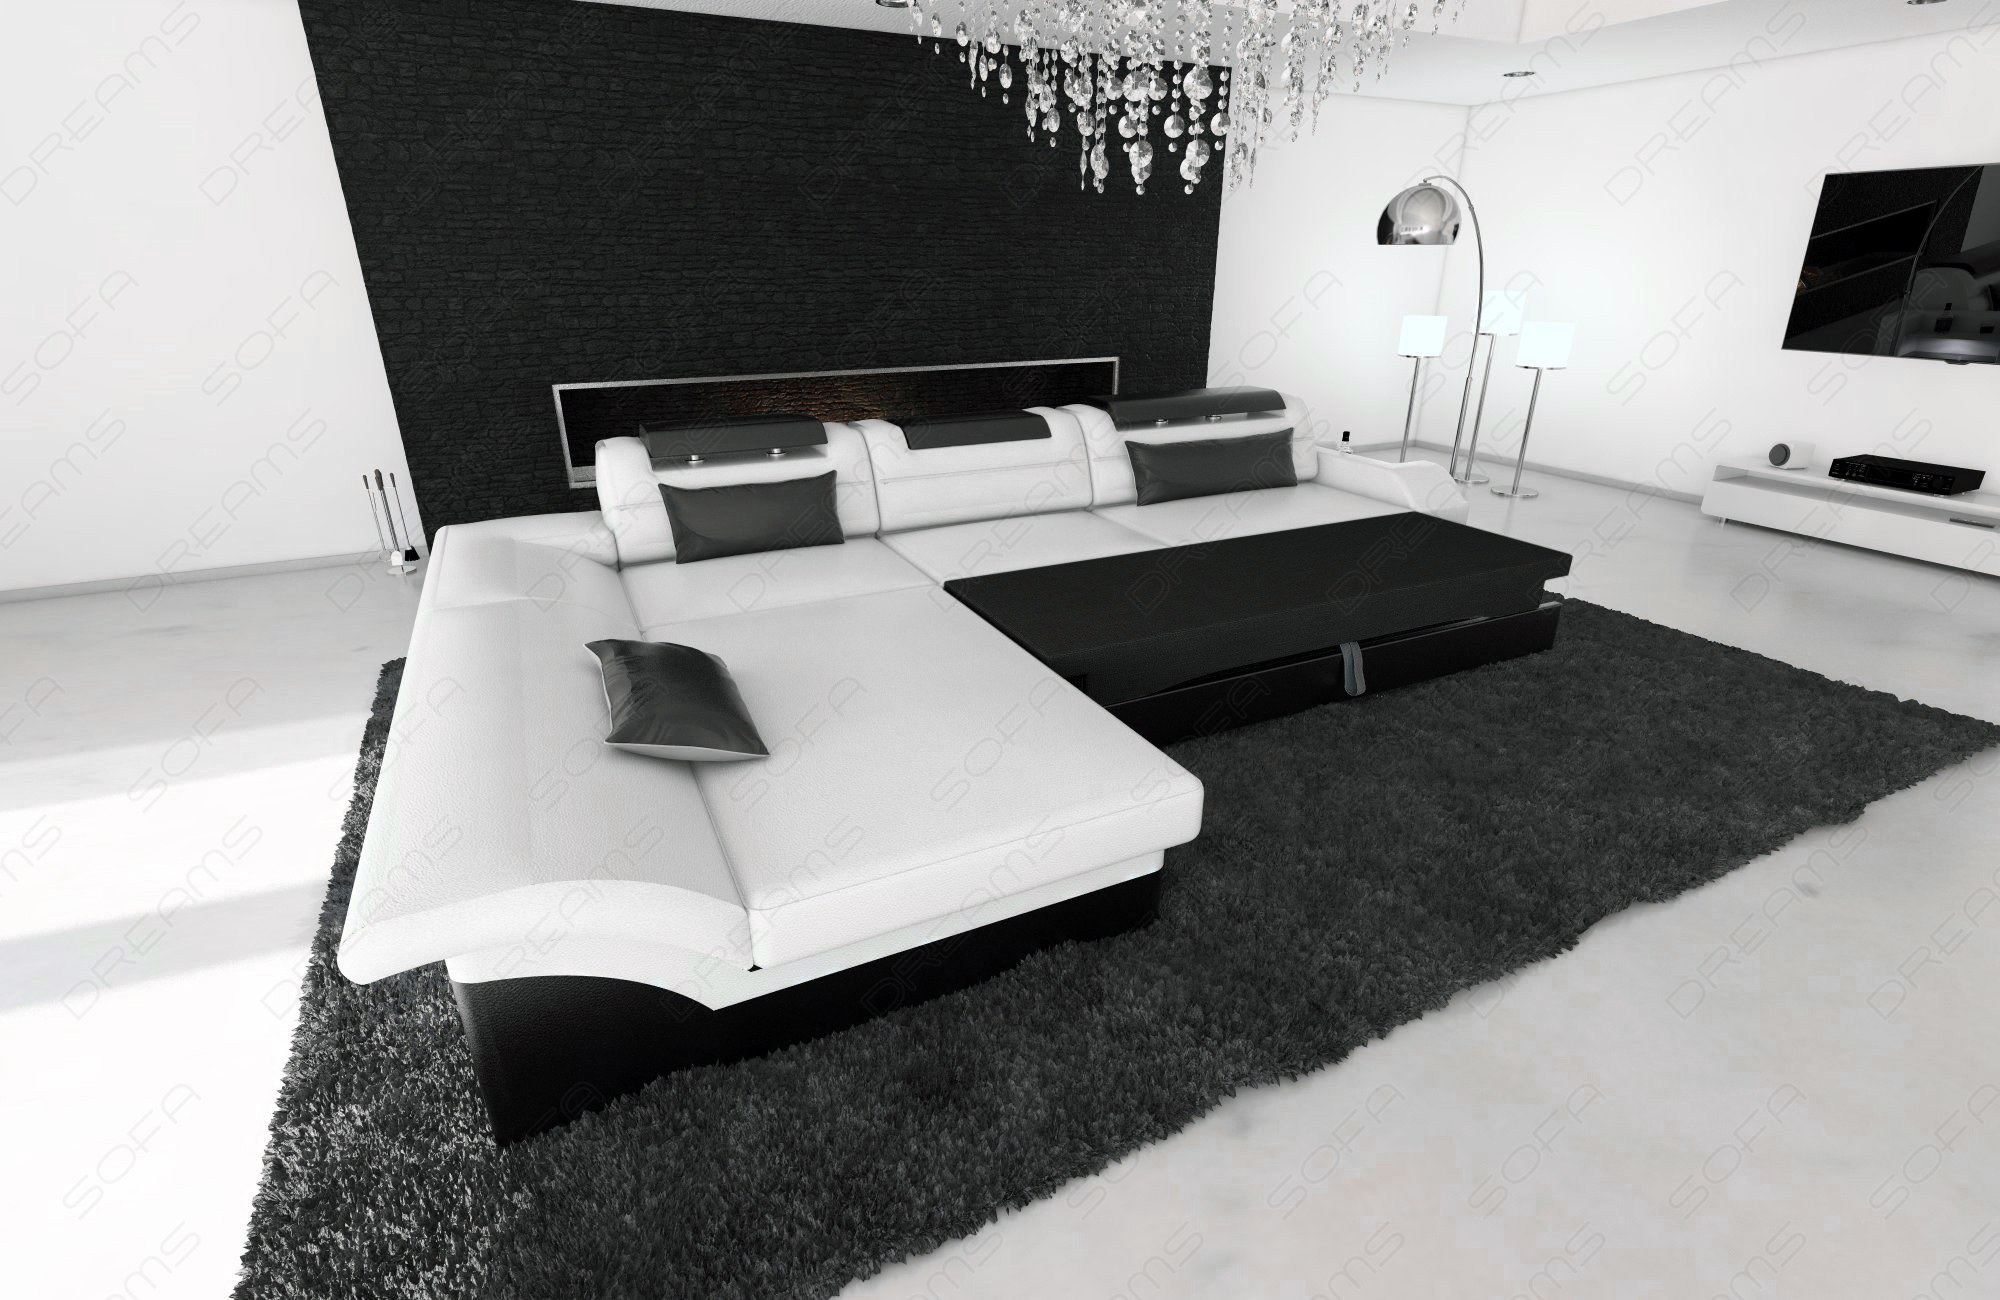 design sectional sofa monza l shaped leathersofa with led lights ebay. Black Bedroom Furniture Sets. Home Design Ideas